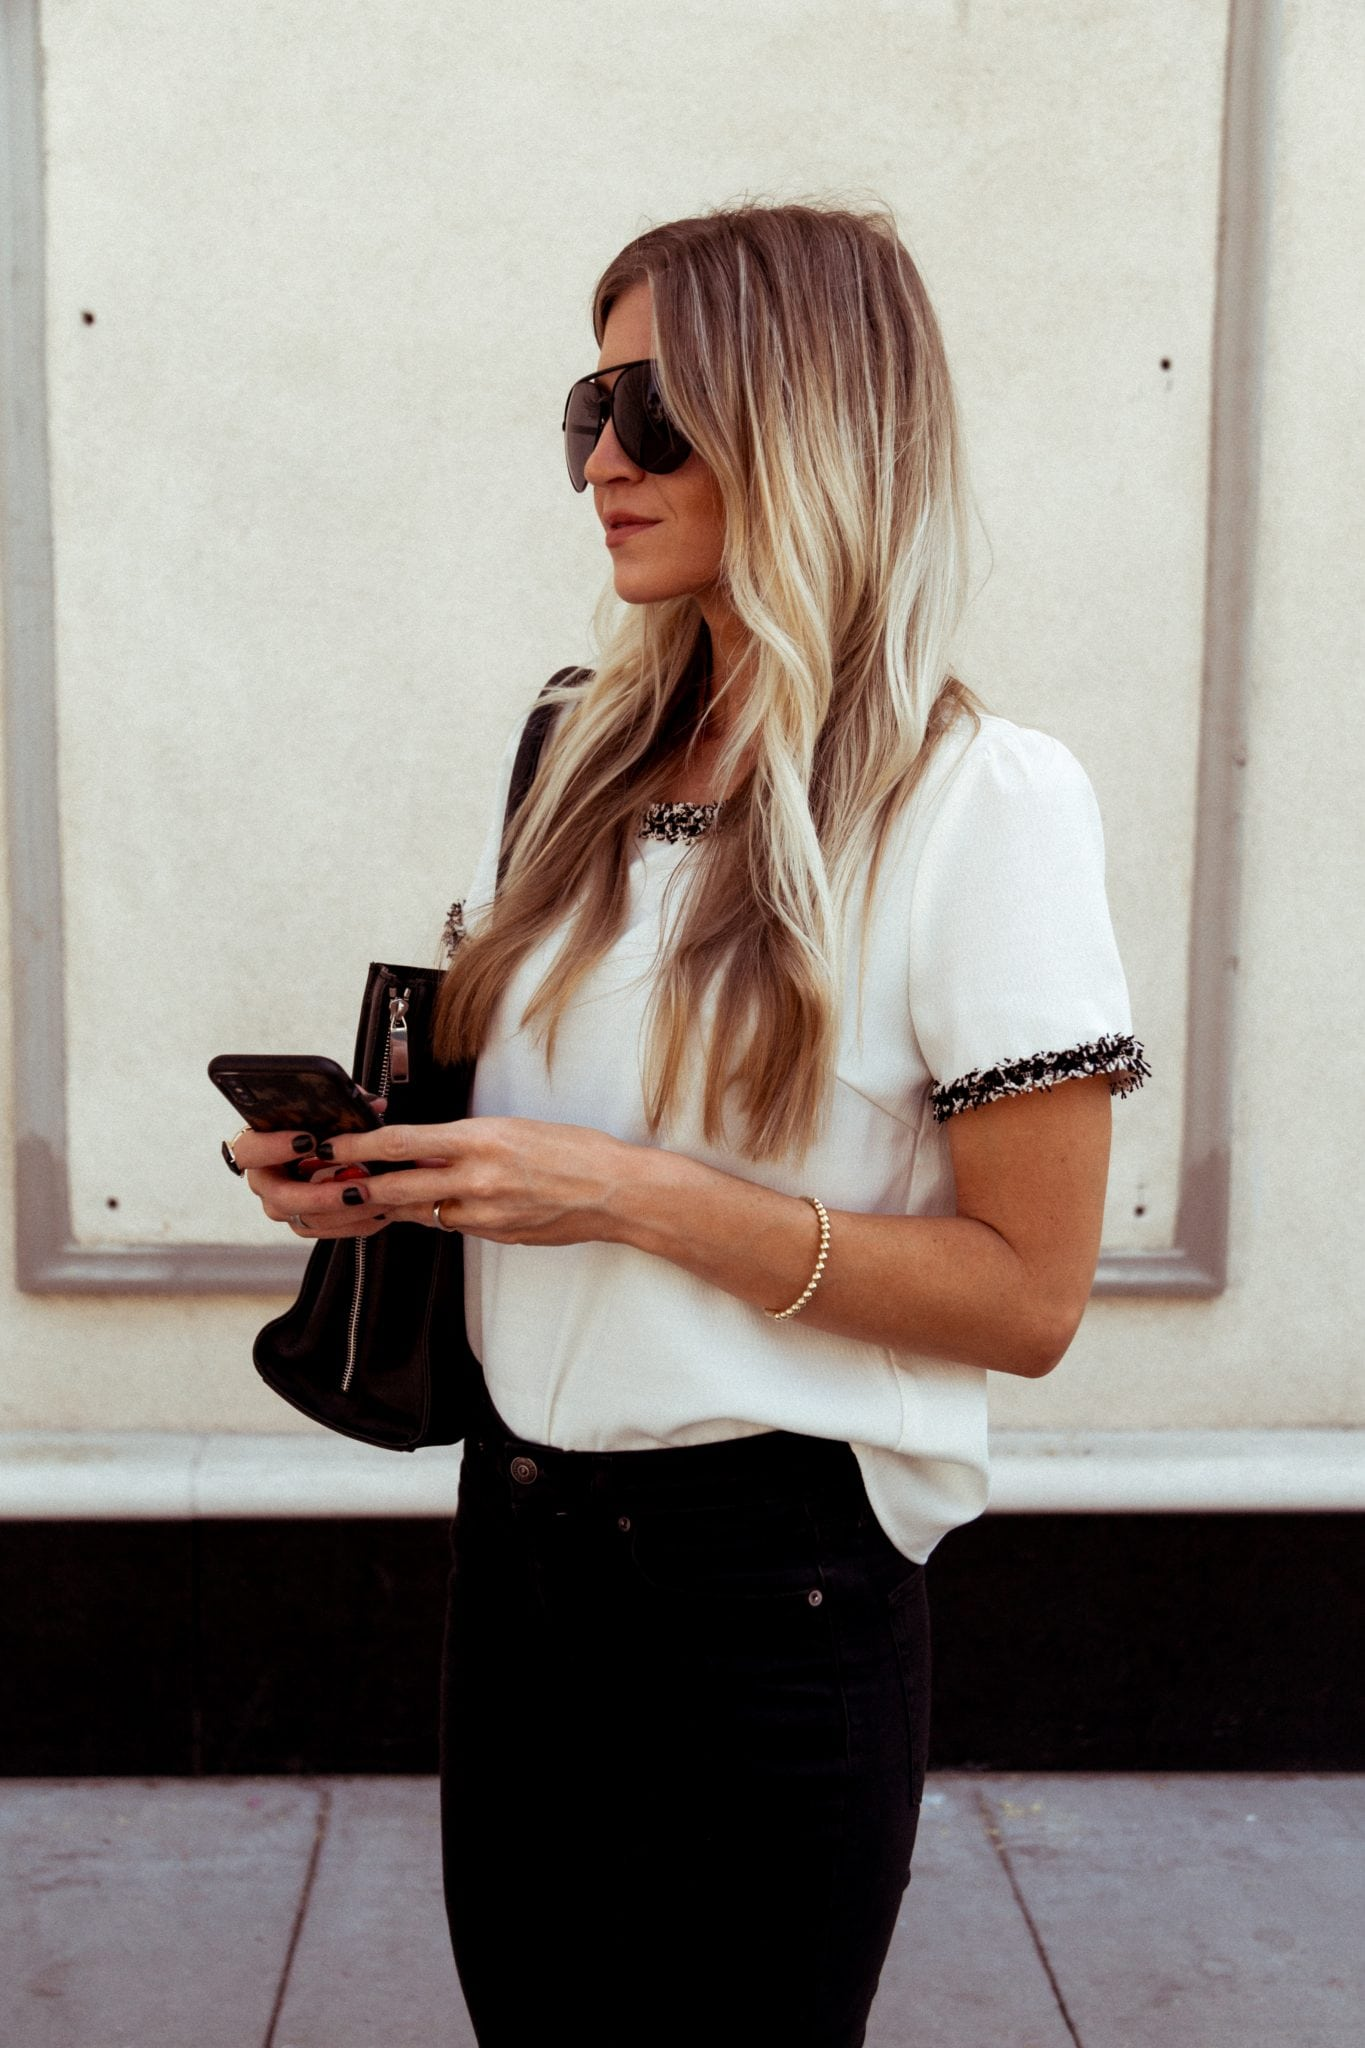 White chanel inspired blouse - Elle Apparel Blog